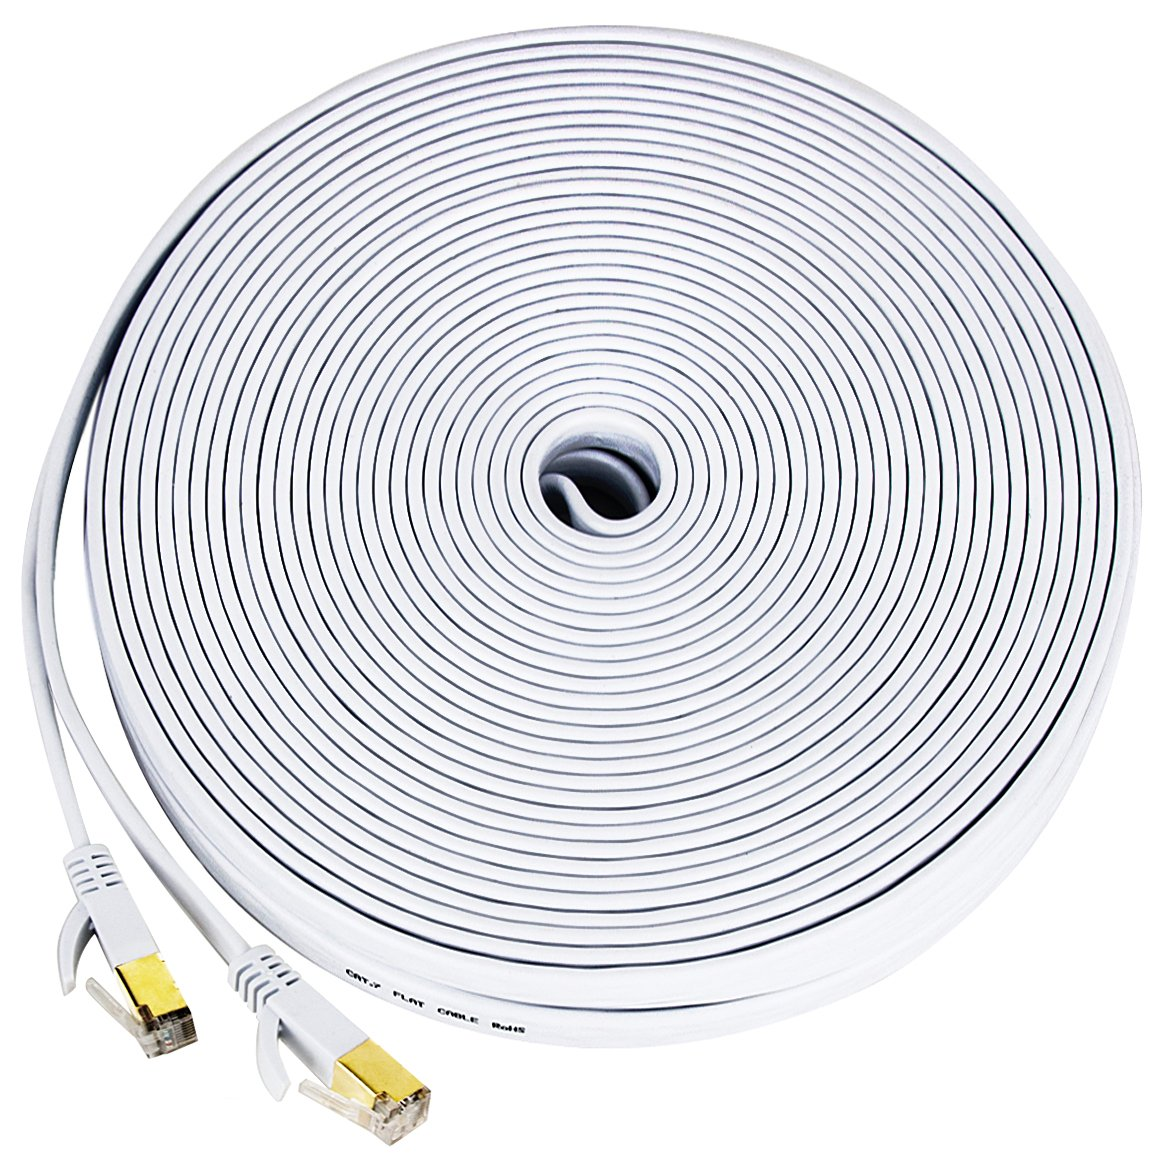 Cheap Outdoor Cat5 Cable Find Deals On Line At Cat 5e Patch Cords Cables Cat5e Get Quotations 7 Ethernet 100 Ft Wireless Networking With Clipssupports